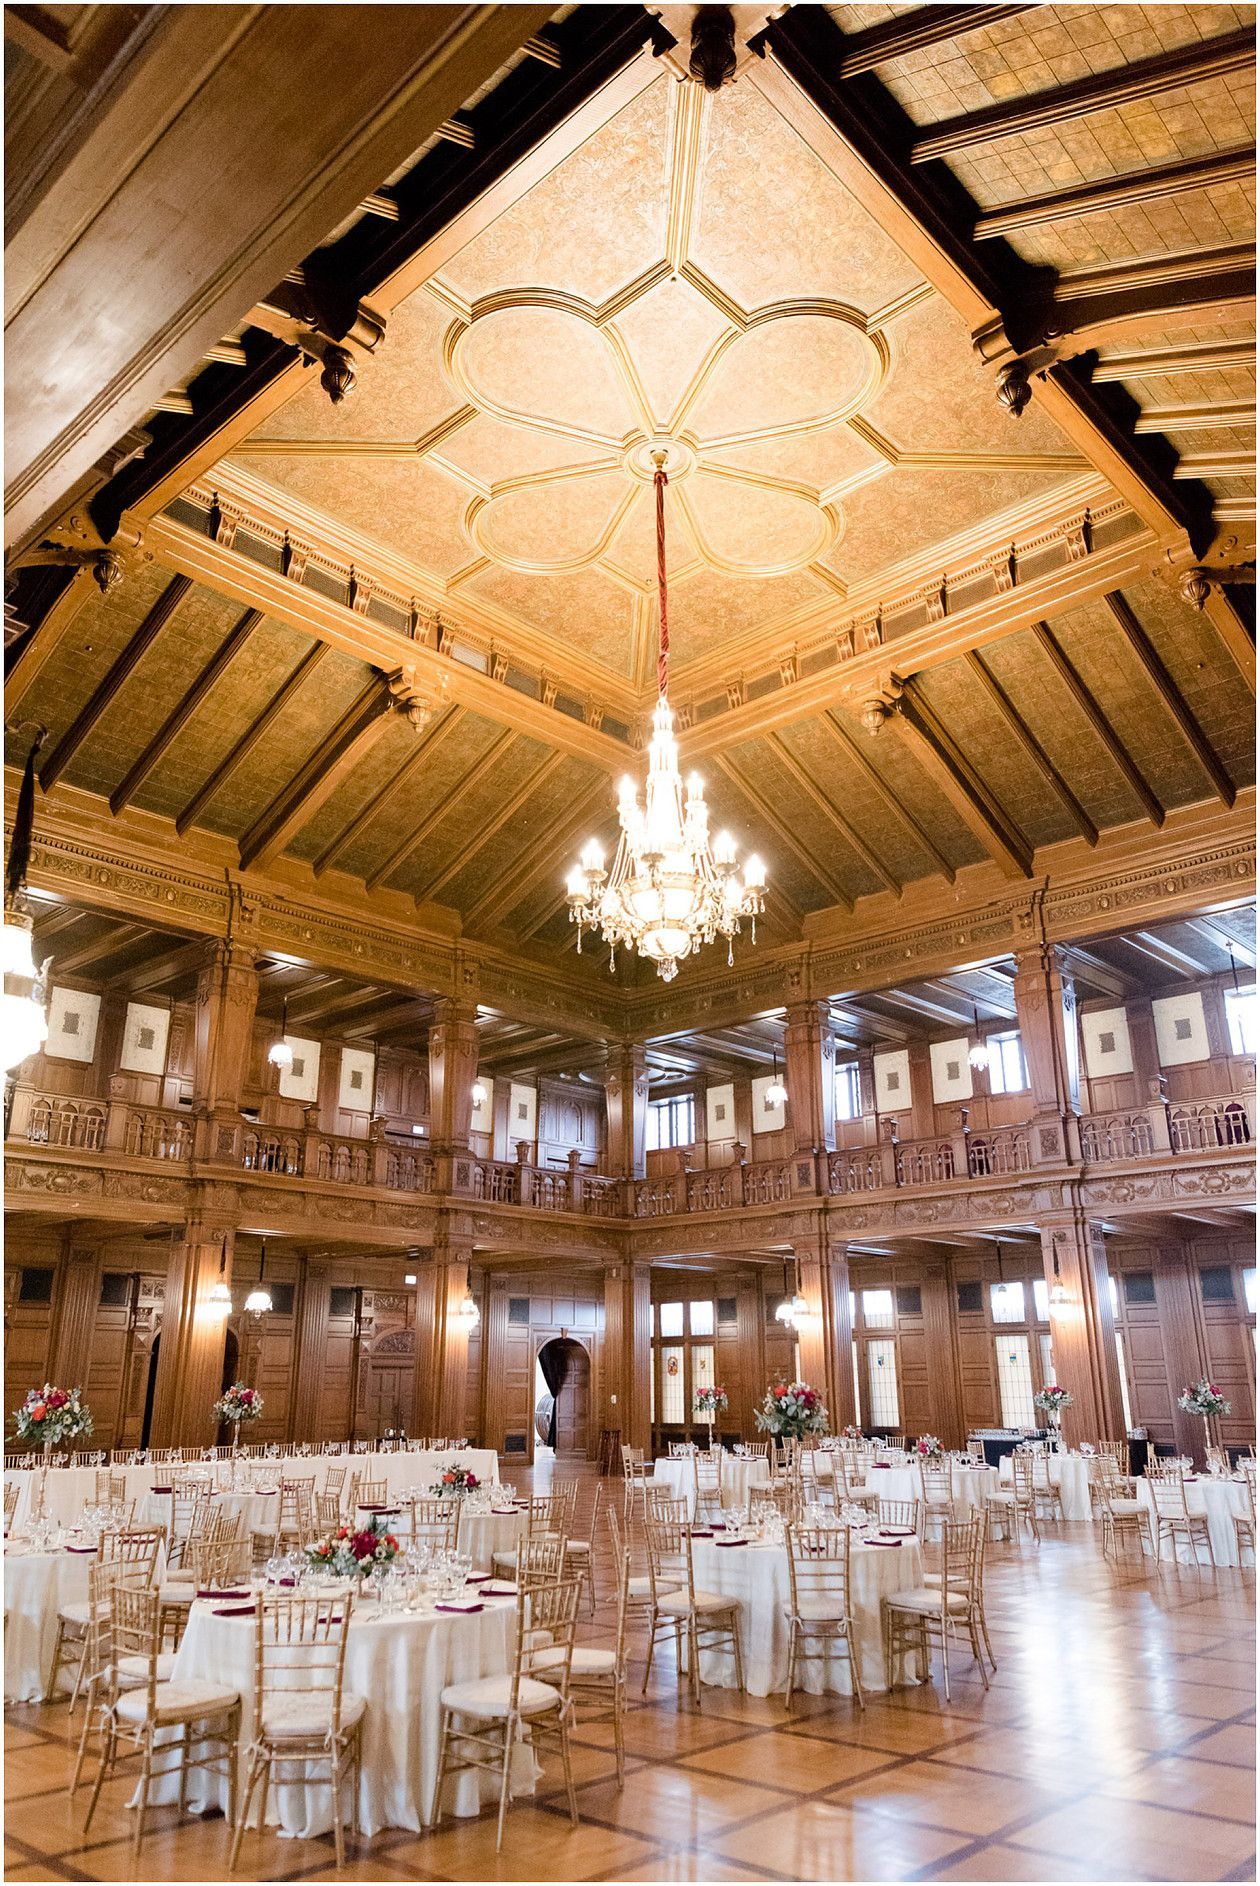 Scottish Rite Cathedral Wedding Reception Scottish Rite Indy Wedding Venue Wedding Venues Indianapolis Wedding Venues Indiana Michigan Wedding Venues